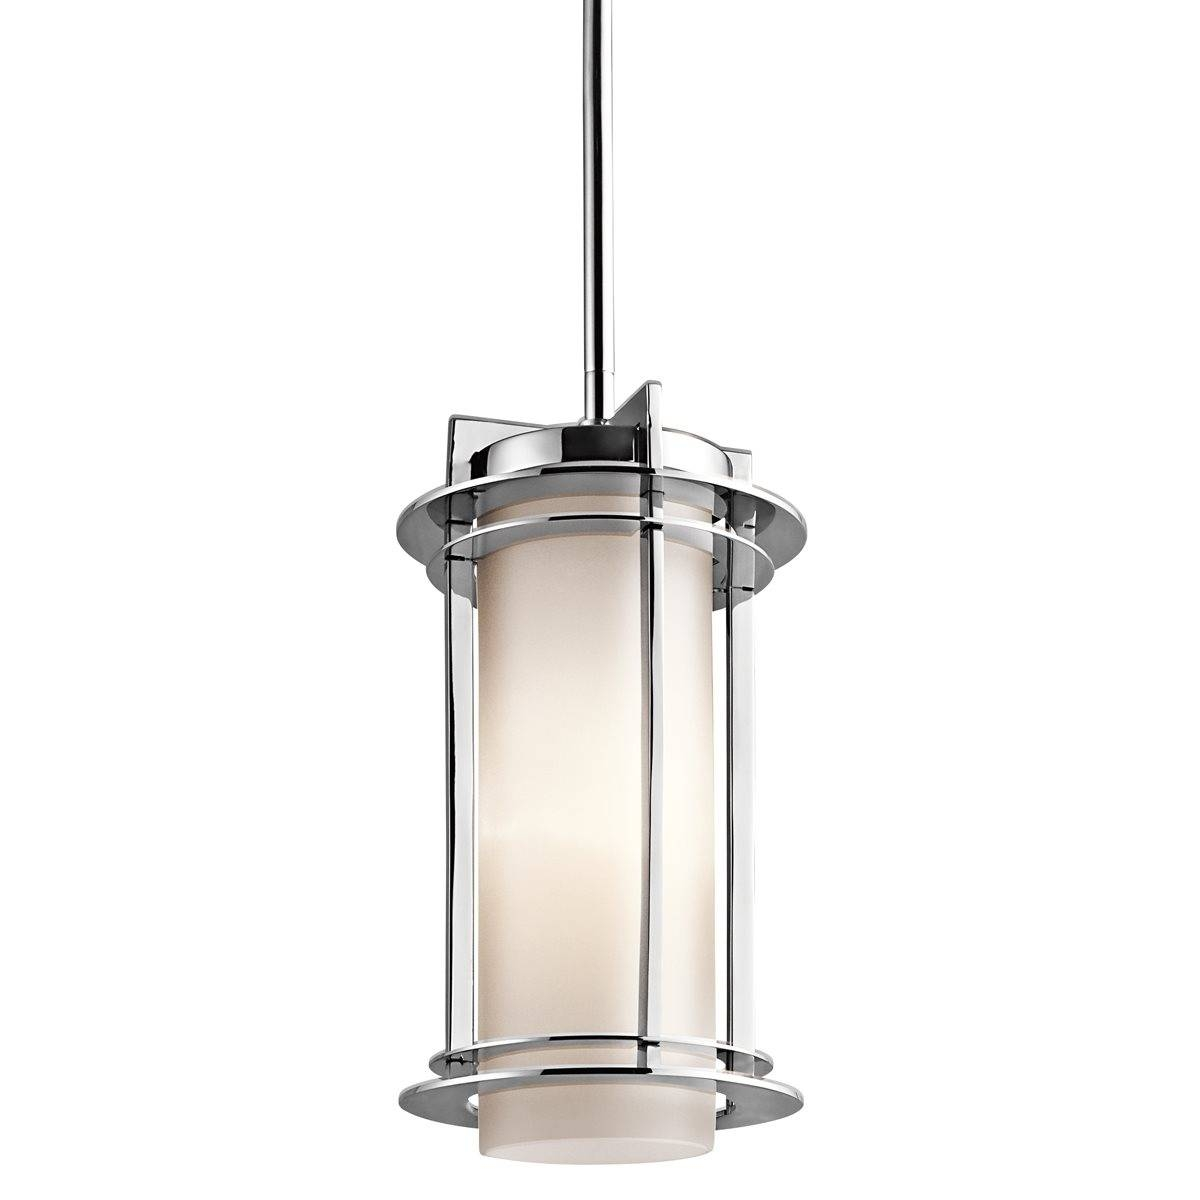 Amazing Pendant Outdoor Lighting 89 With Additional Mission Style with Mission Style Pendant Lighting (Image 1 of 15)